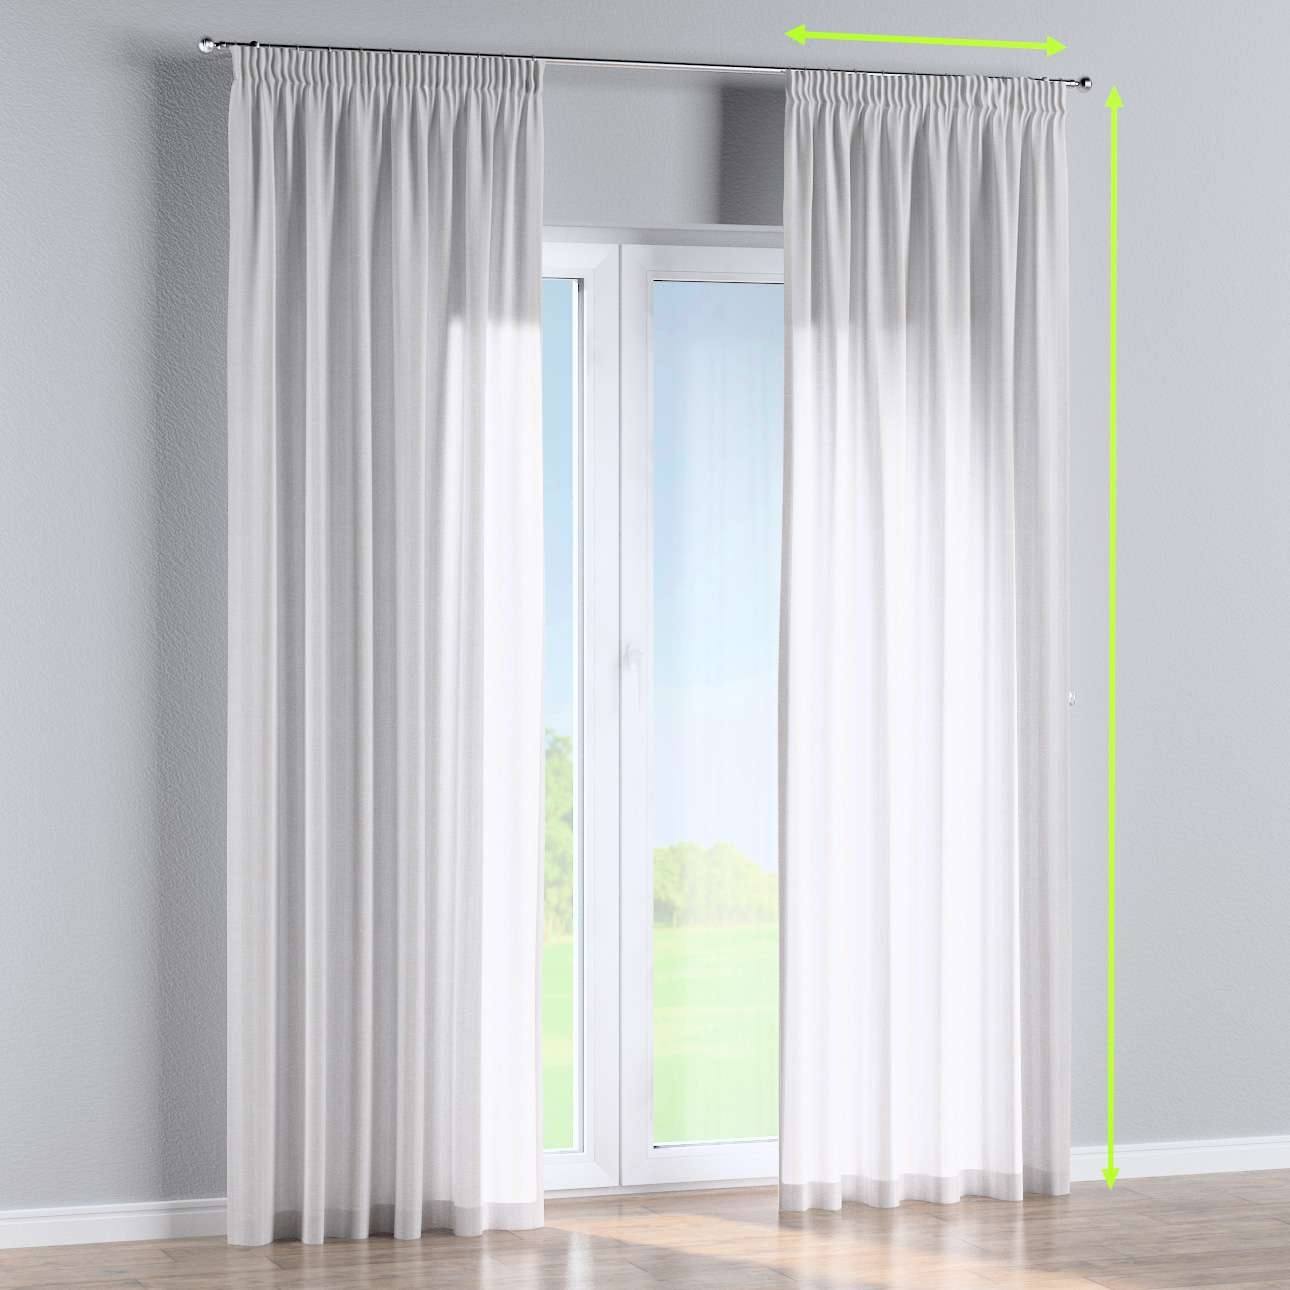 Pencil pleat lined curtains in collection Linen , fabric: 392-03